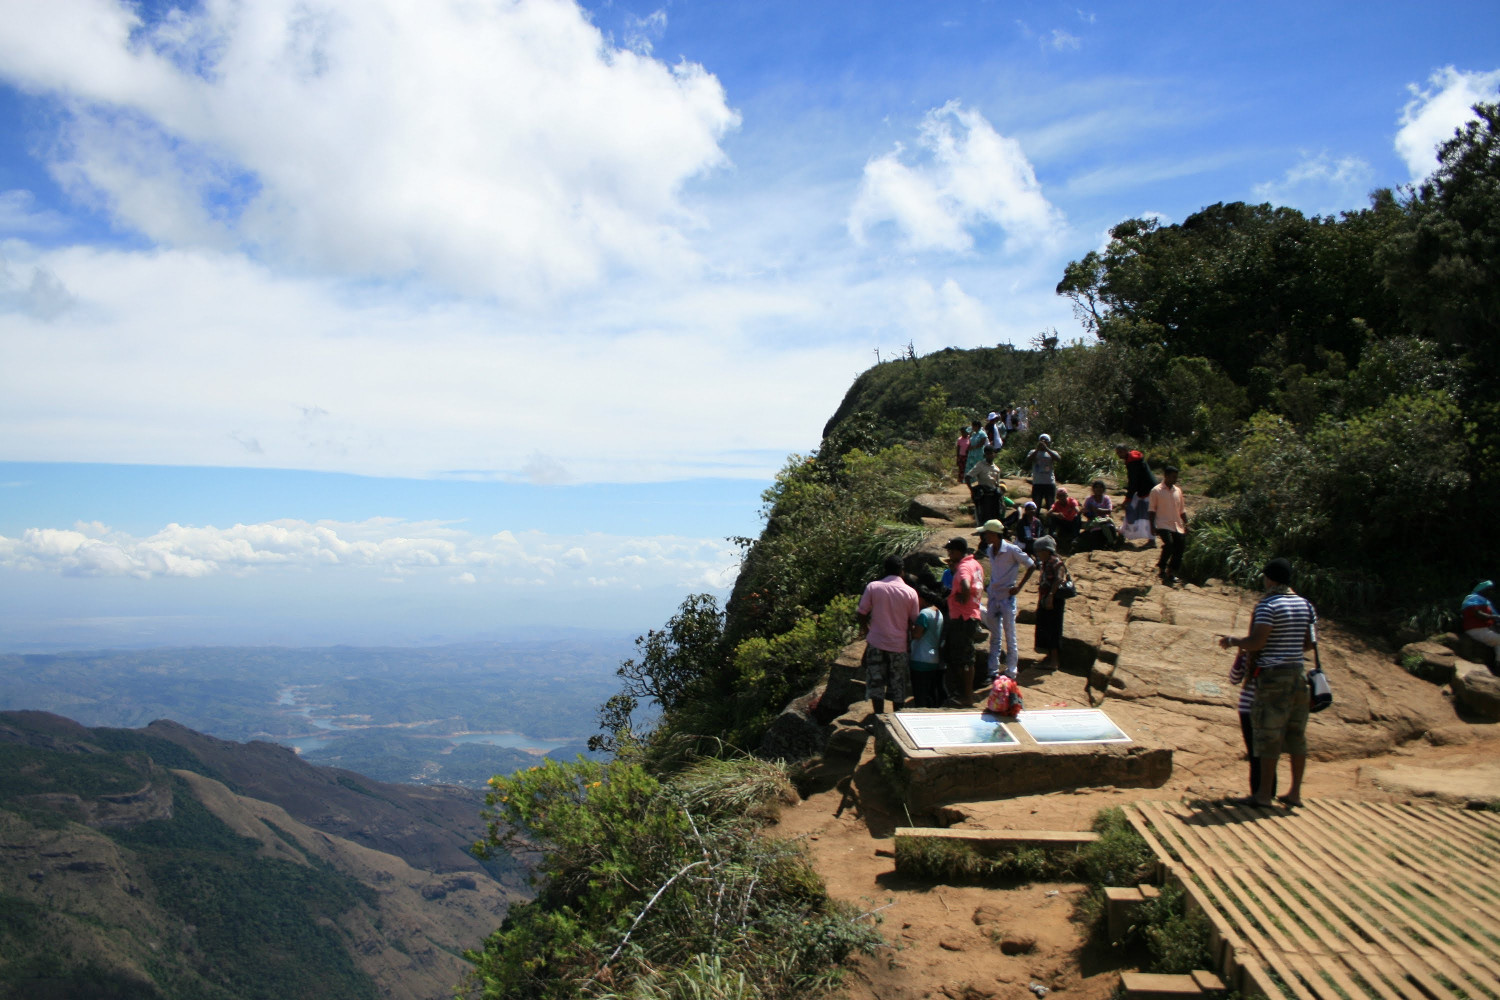 Hiking at Horton Plains National Park